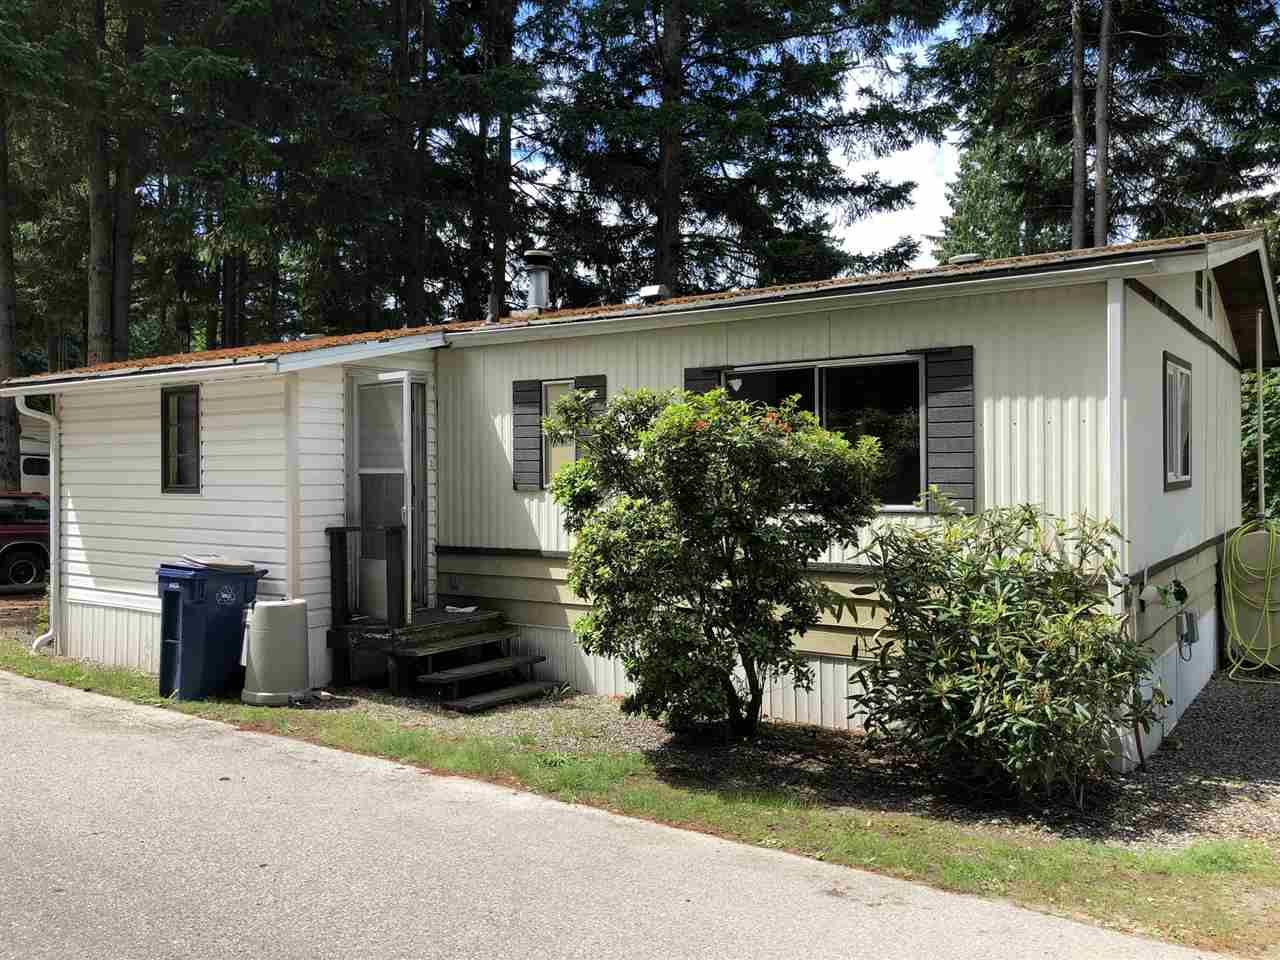 "Main Photo: 7 5294 SELMA PARK Road in Sechelt: Sechelt District Manufactured Home for sale in ""SELMA VISTA MOBILE HOME PARK"" (Sunshine Coast)  : MLS®# R2293722"